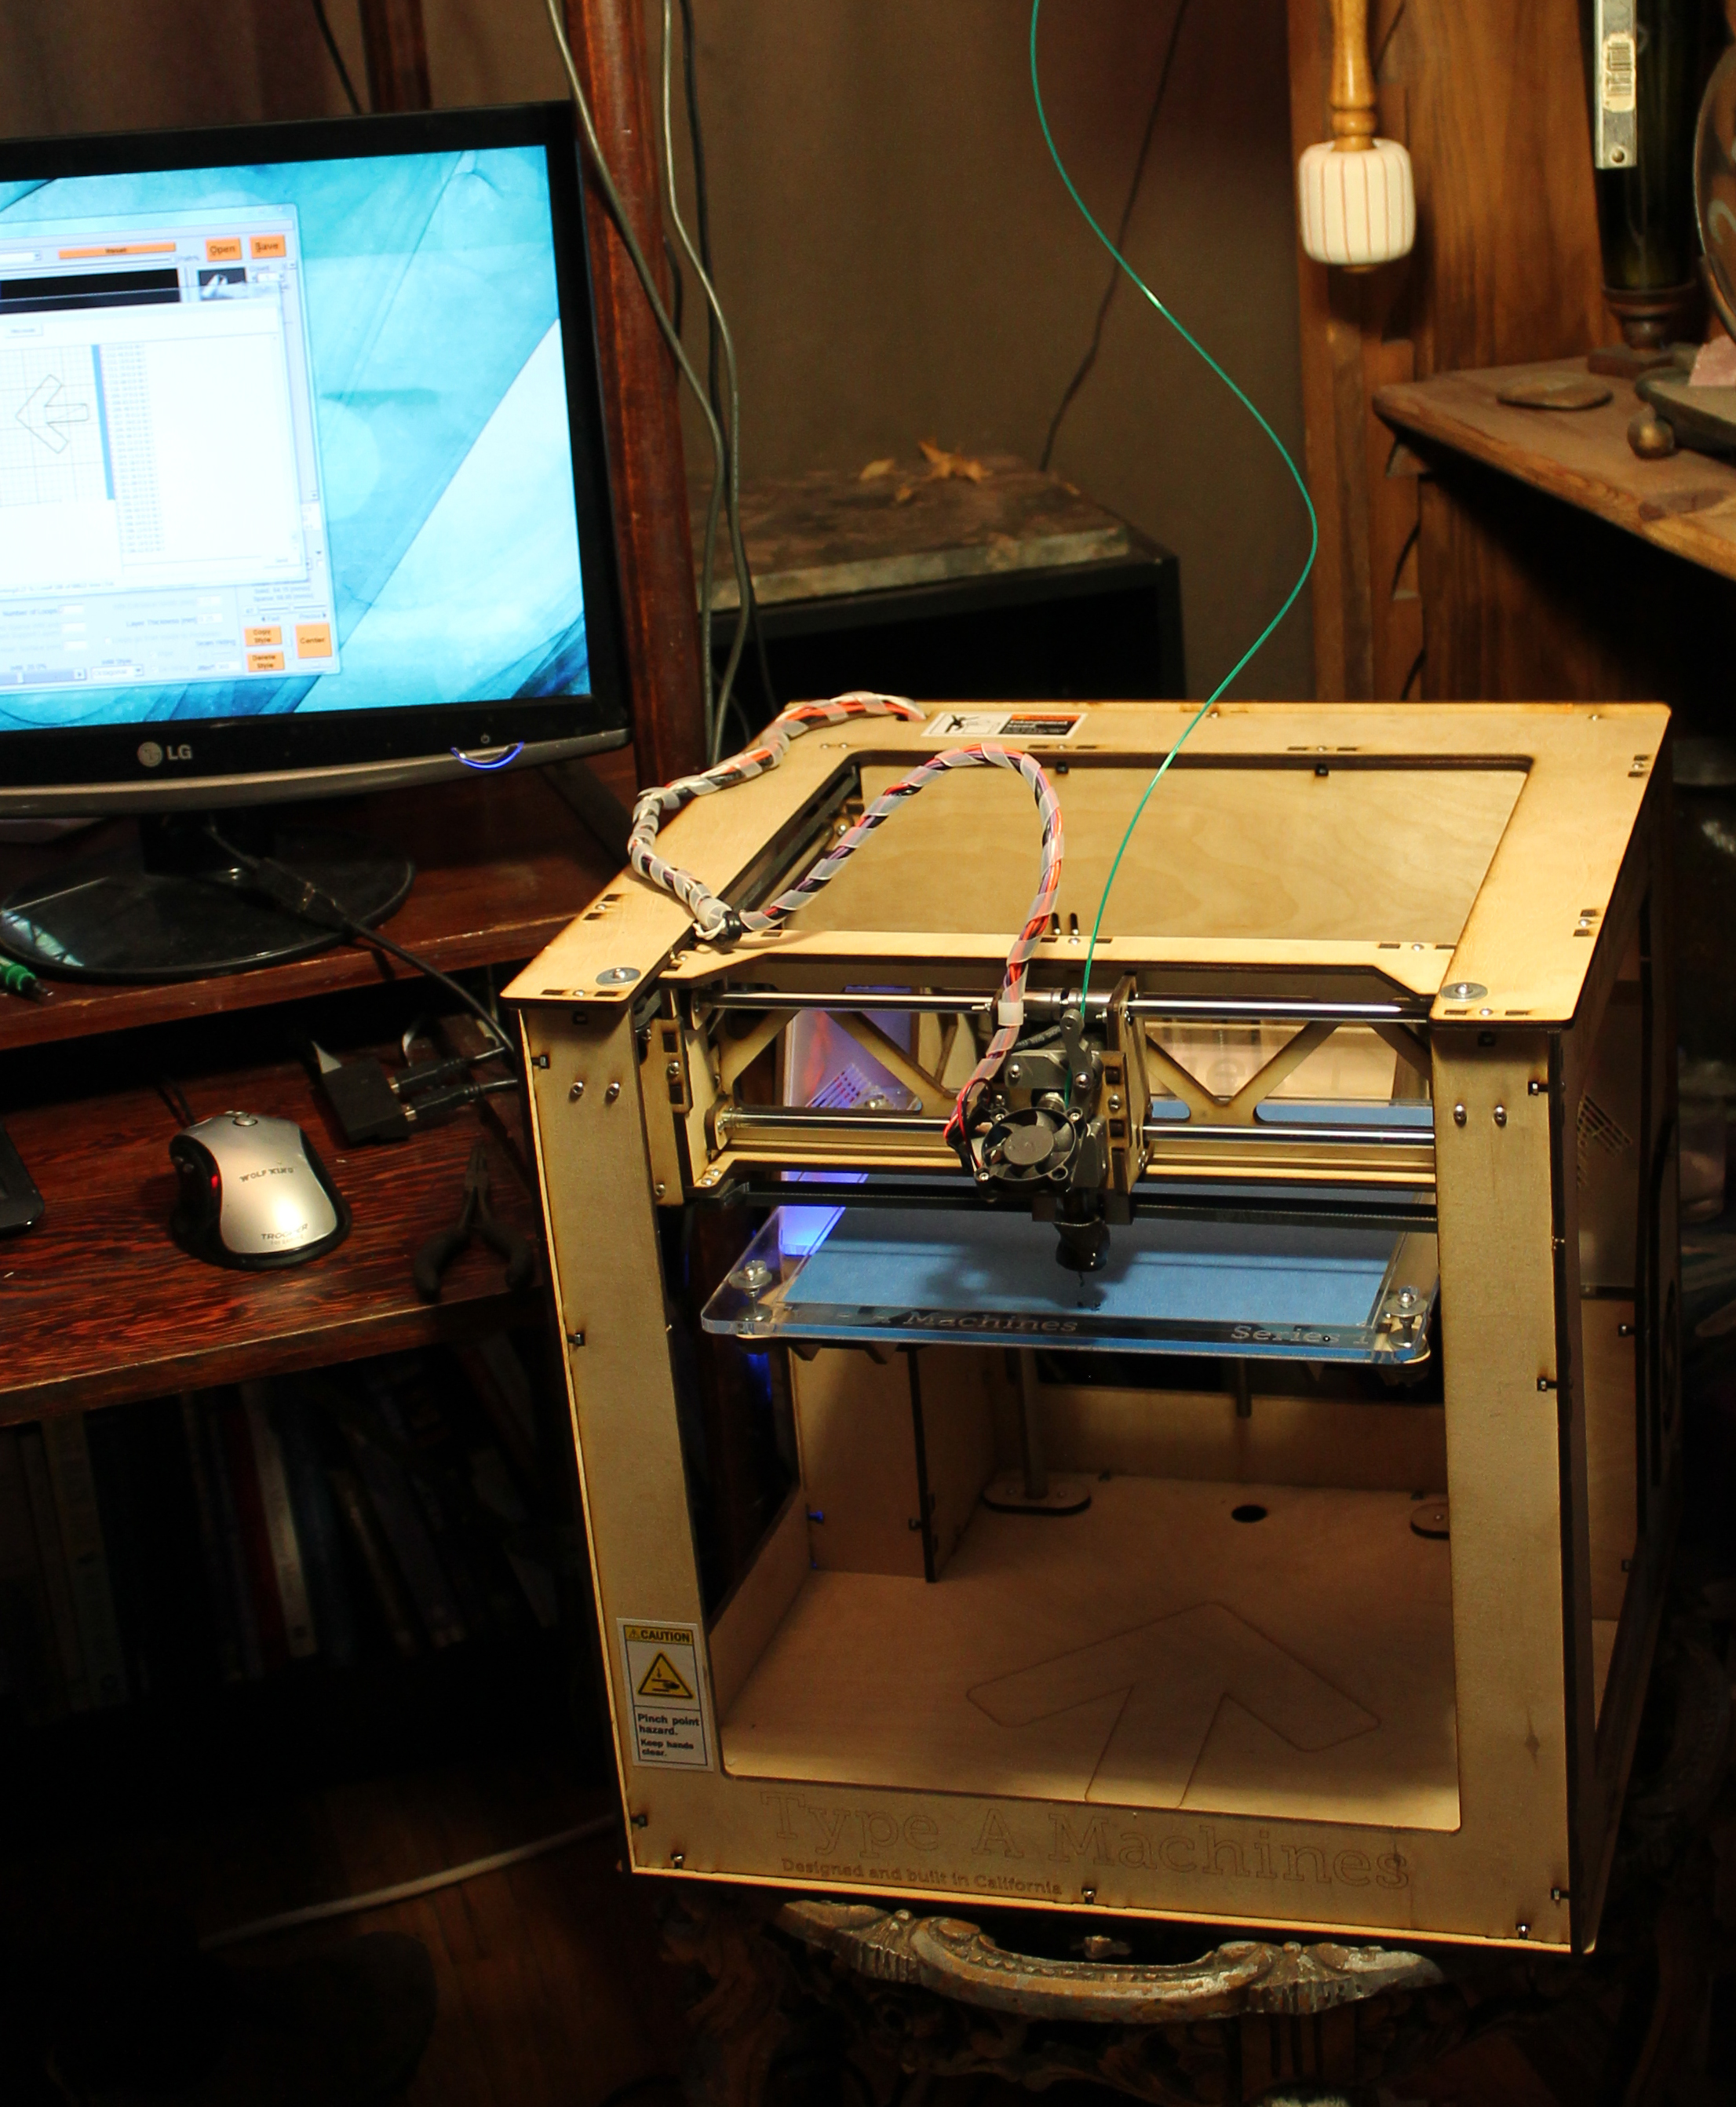 Woody the 3d printer